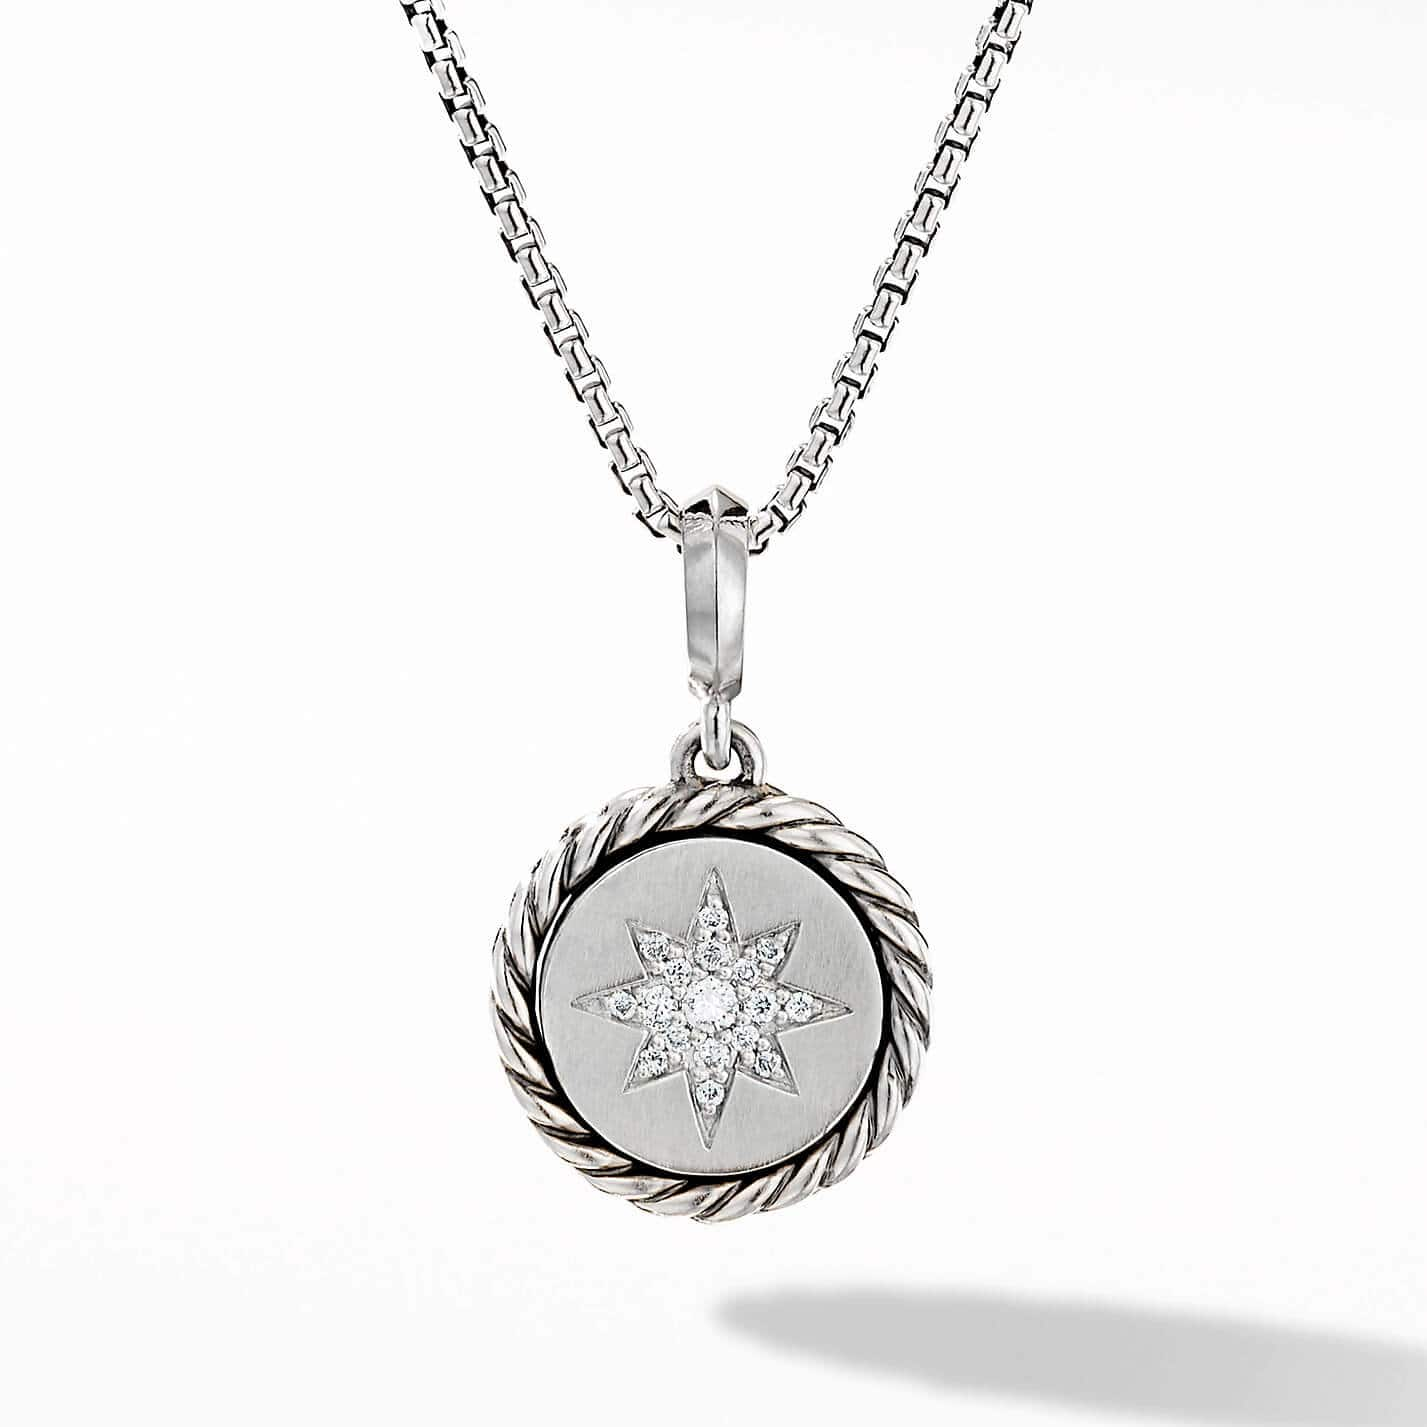 Product image of North Star Necklace with Diamonds